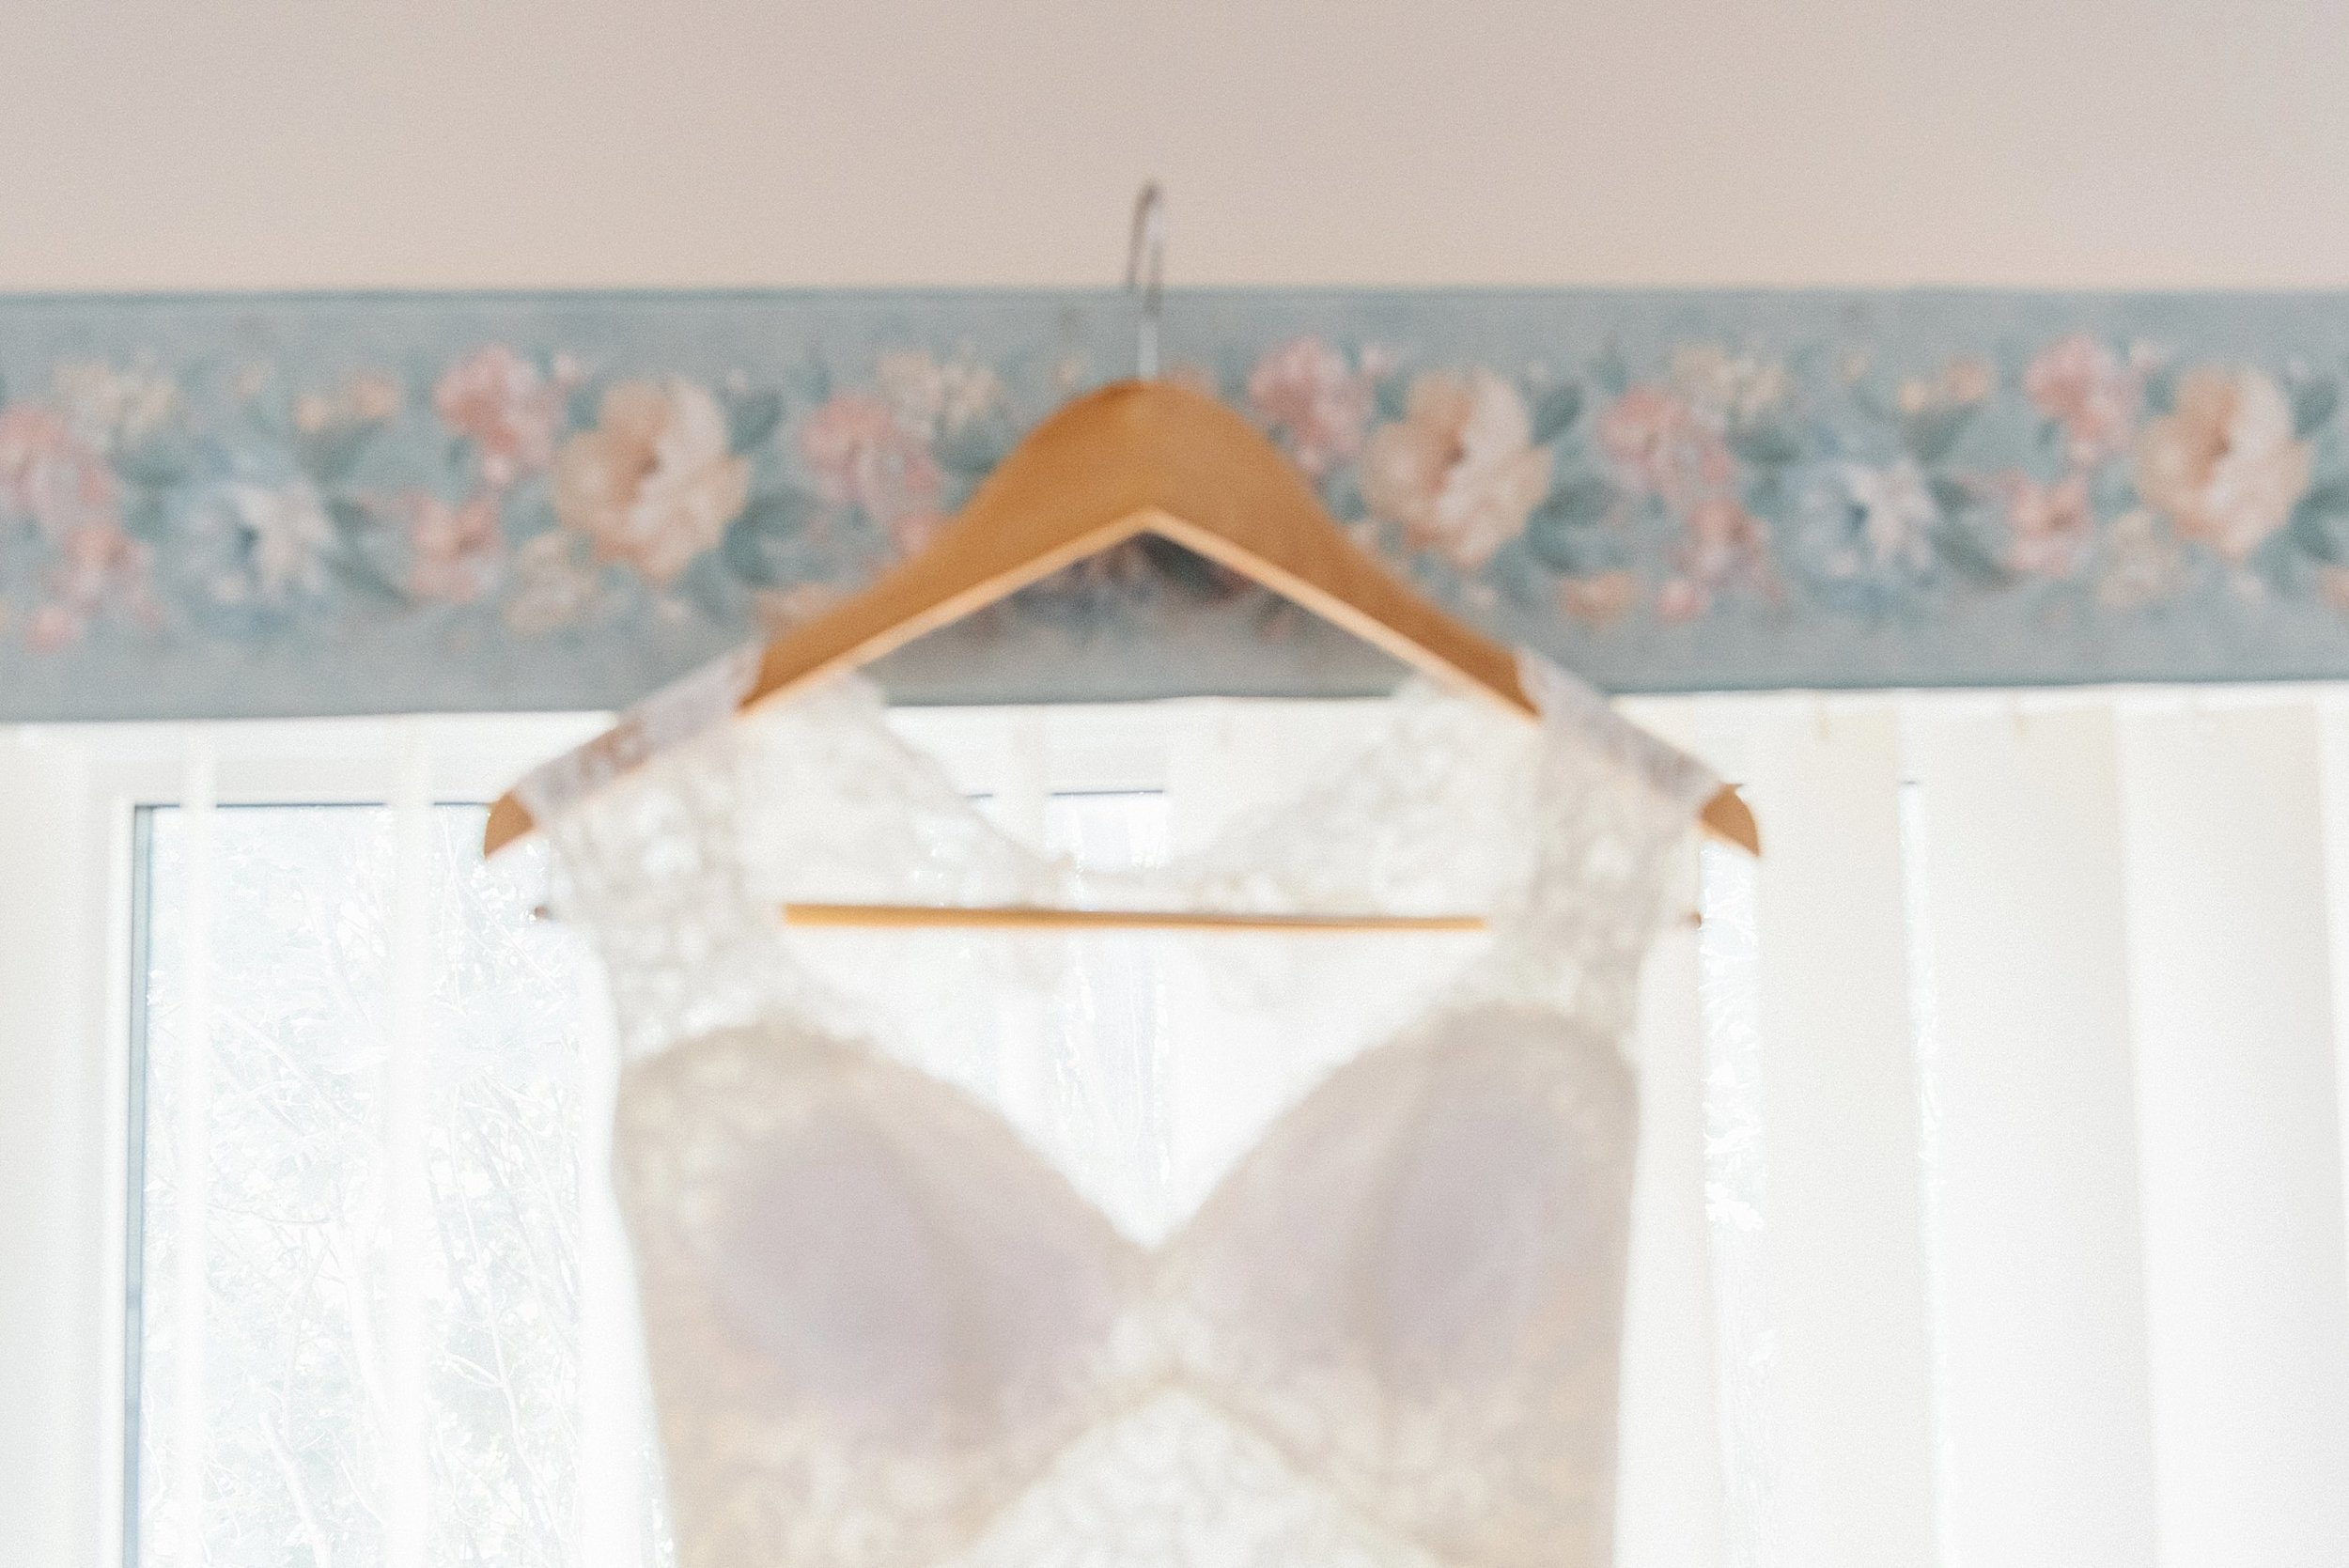 Ali and Batoul Photography - light, airy, indie documentary Ottawa wedding photographer_0185.jpg